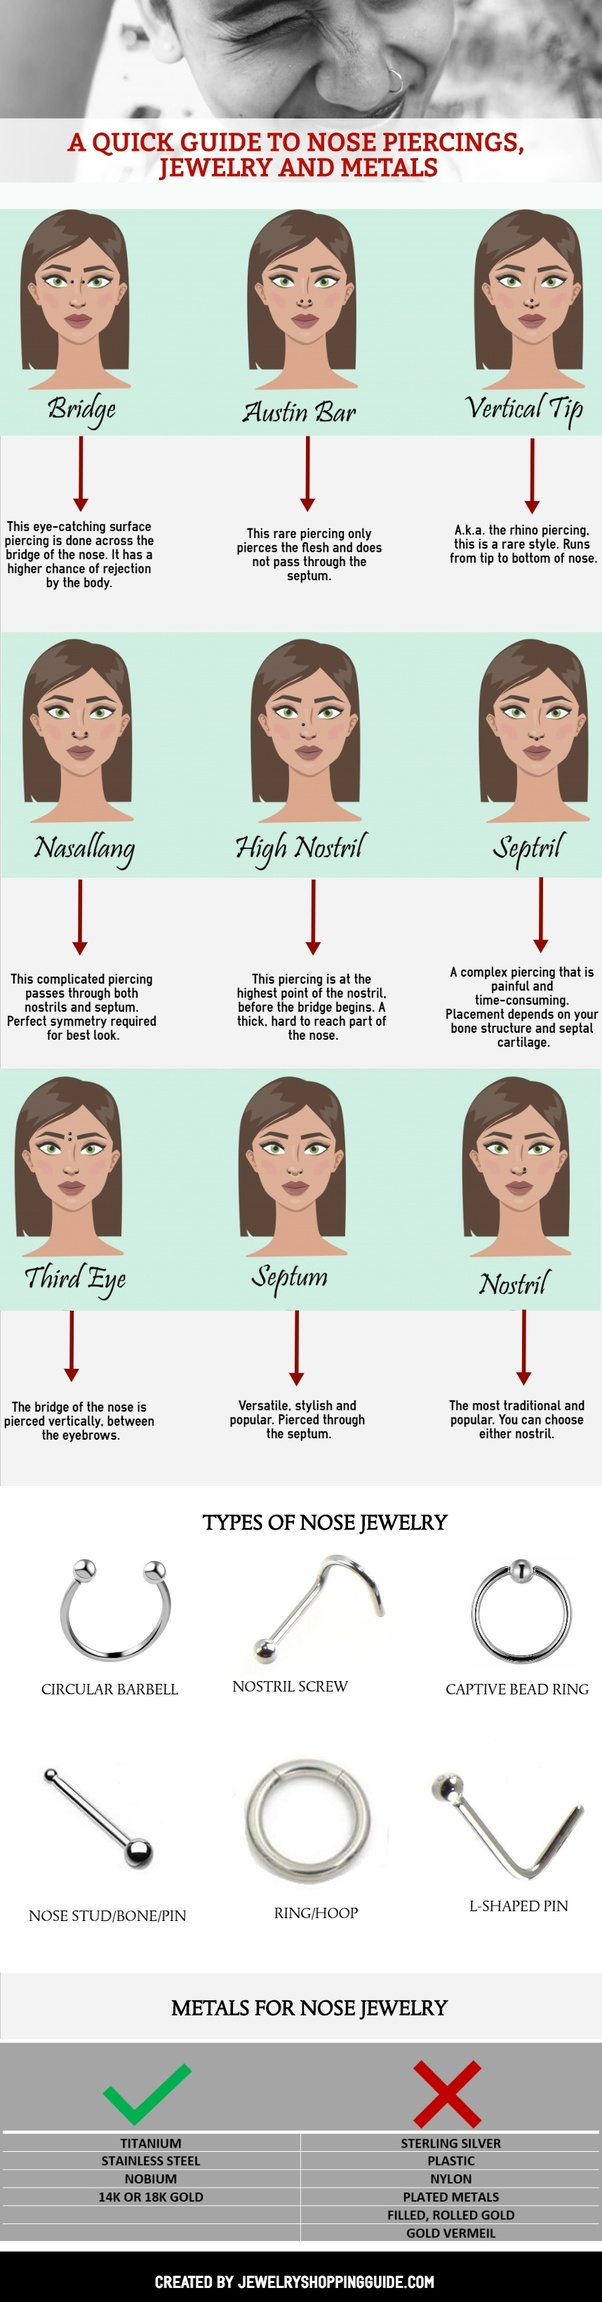 How are septum nose rings different to regular nose rings? - Quora